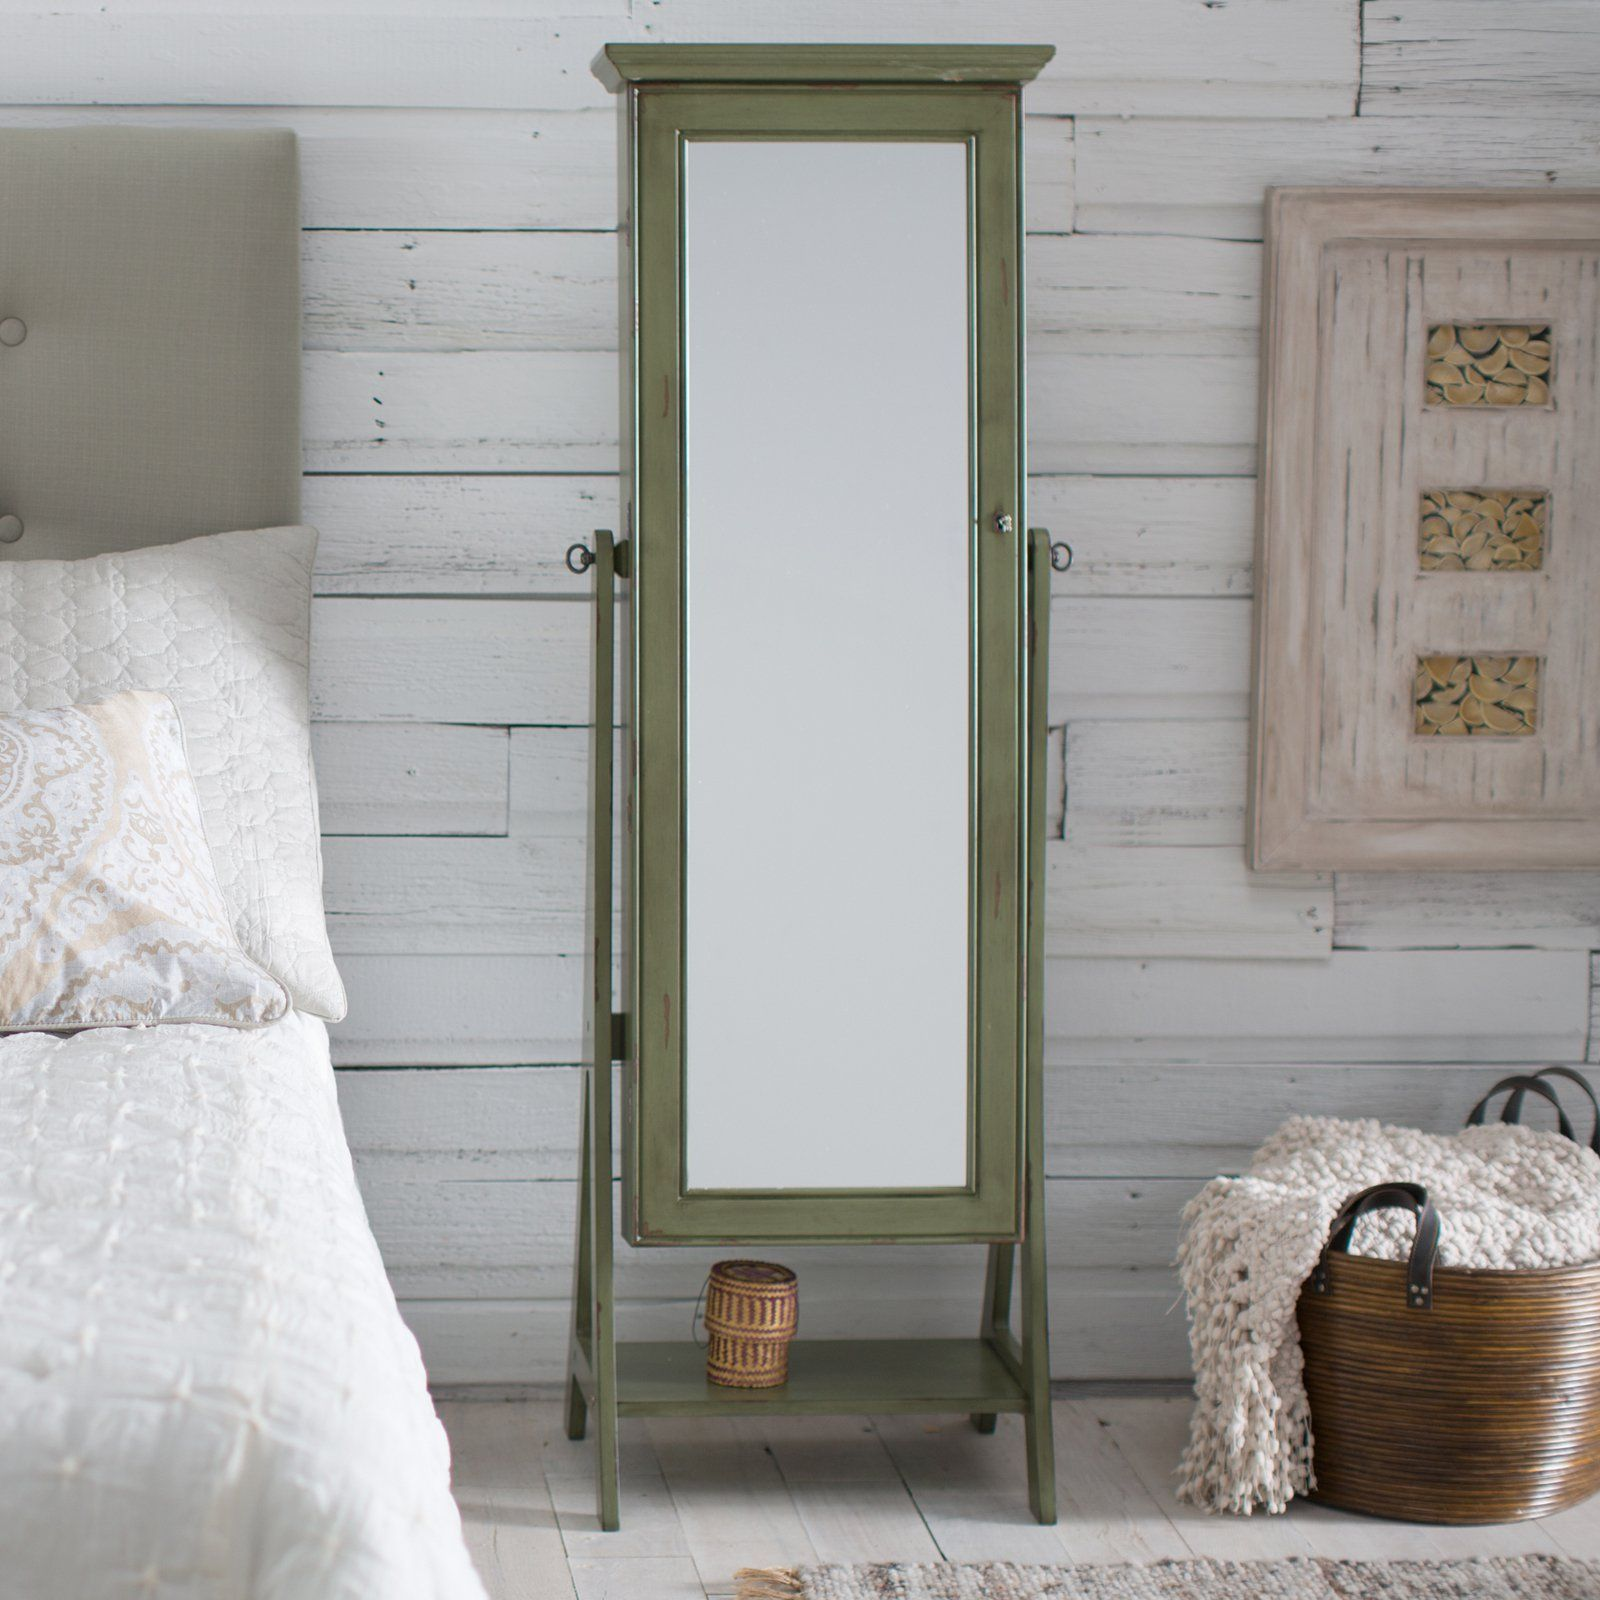 Would love to have this Belham Living Distressed Green Cheval